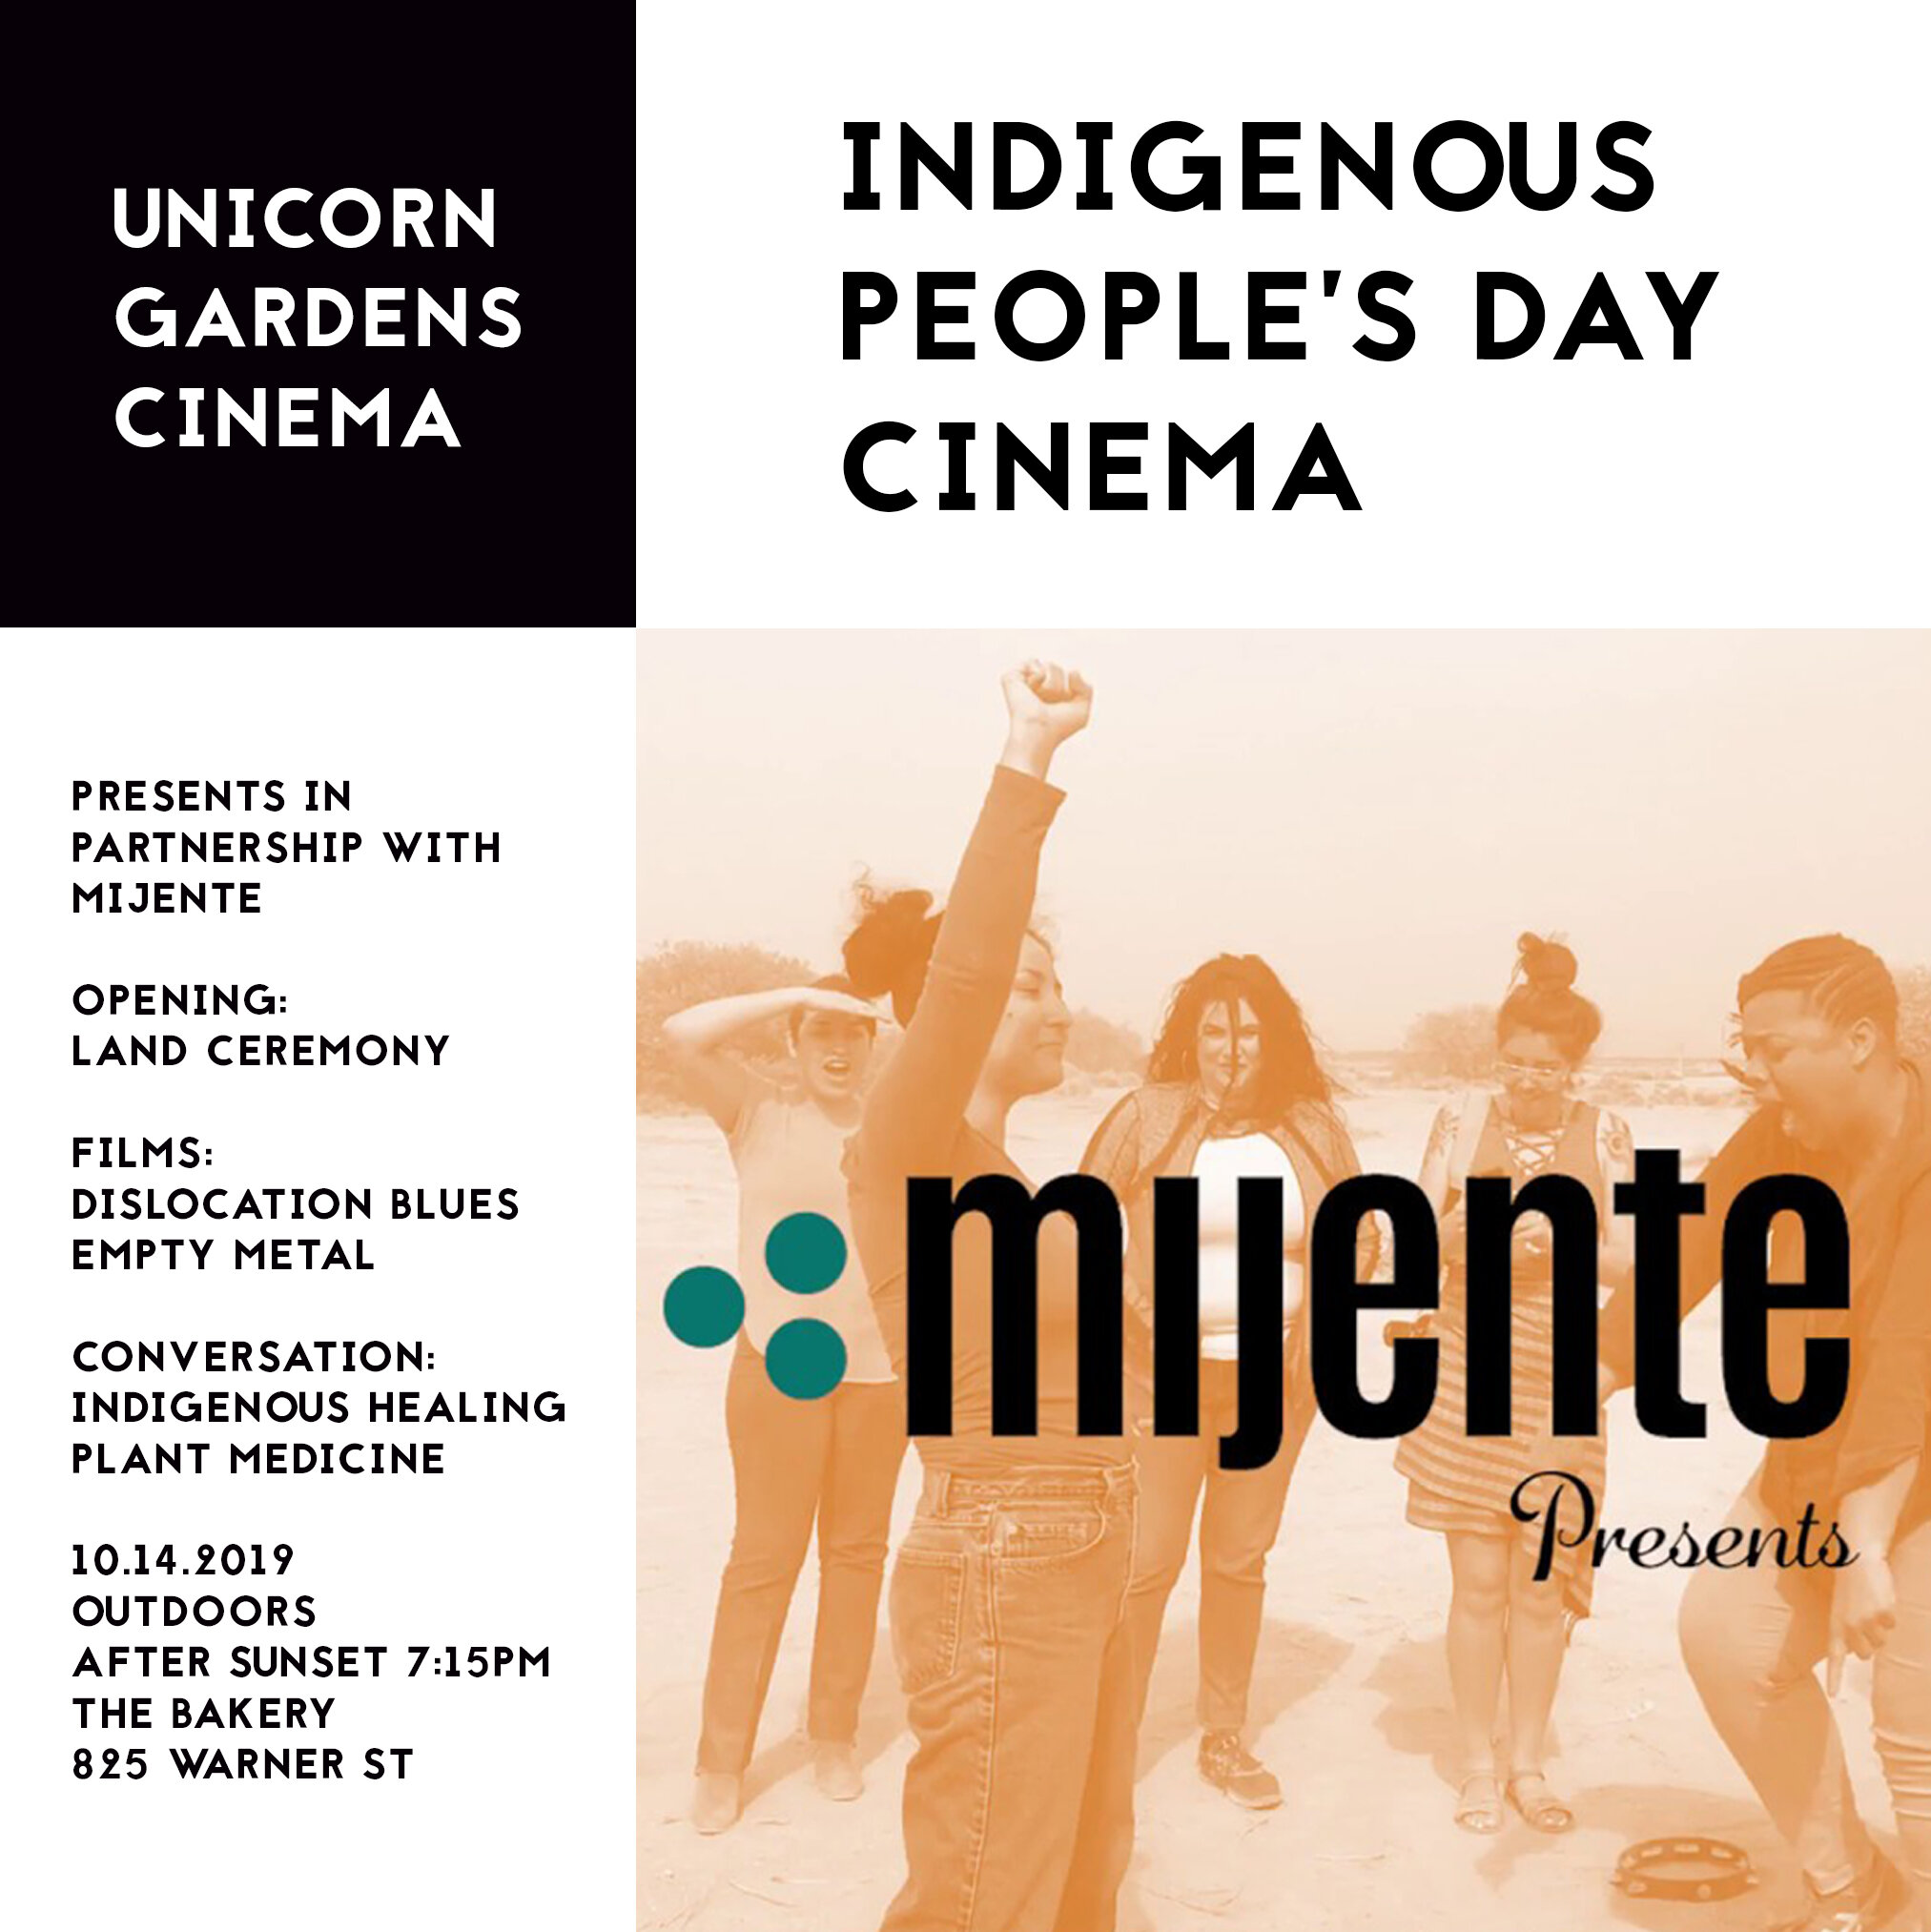 Indigenous People's Day Cinema - Oct 14